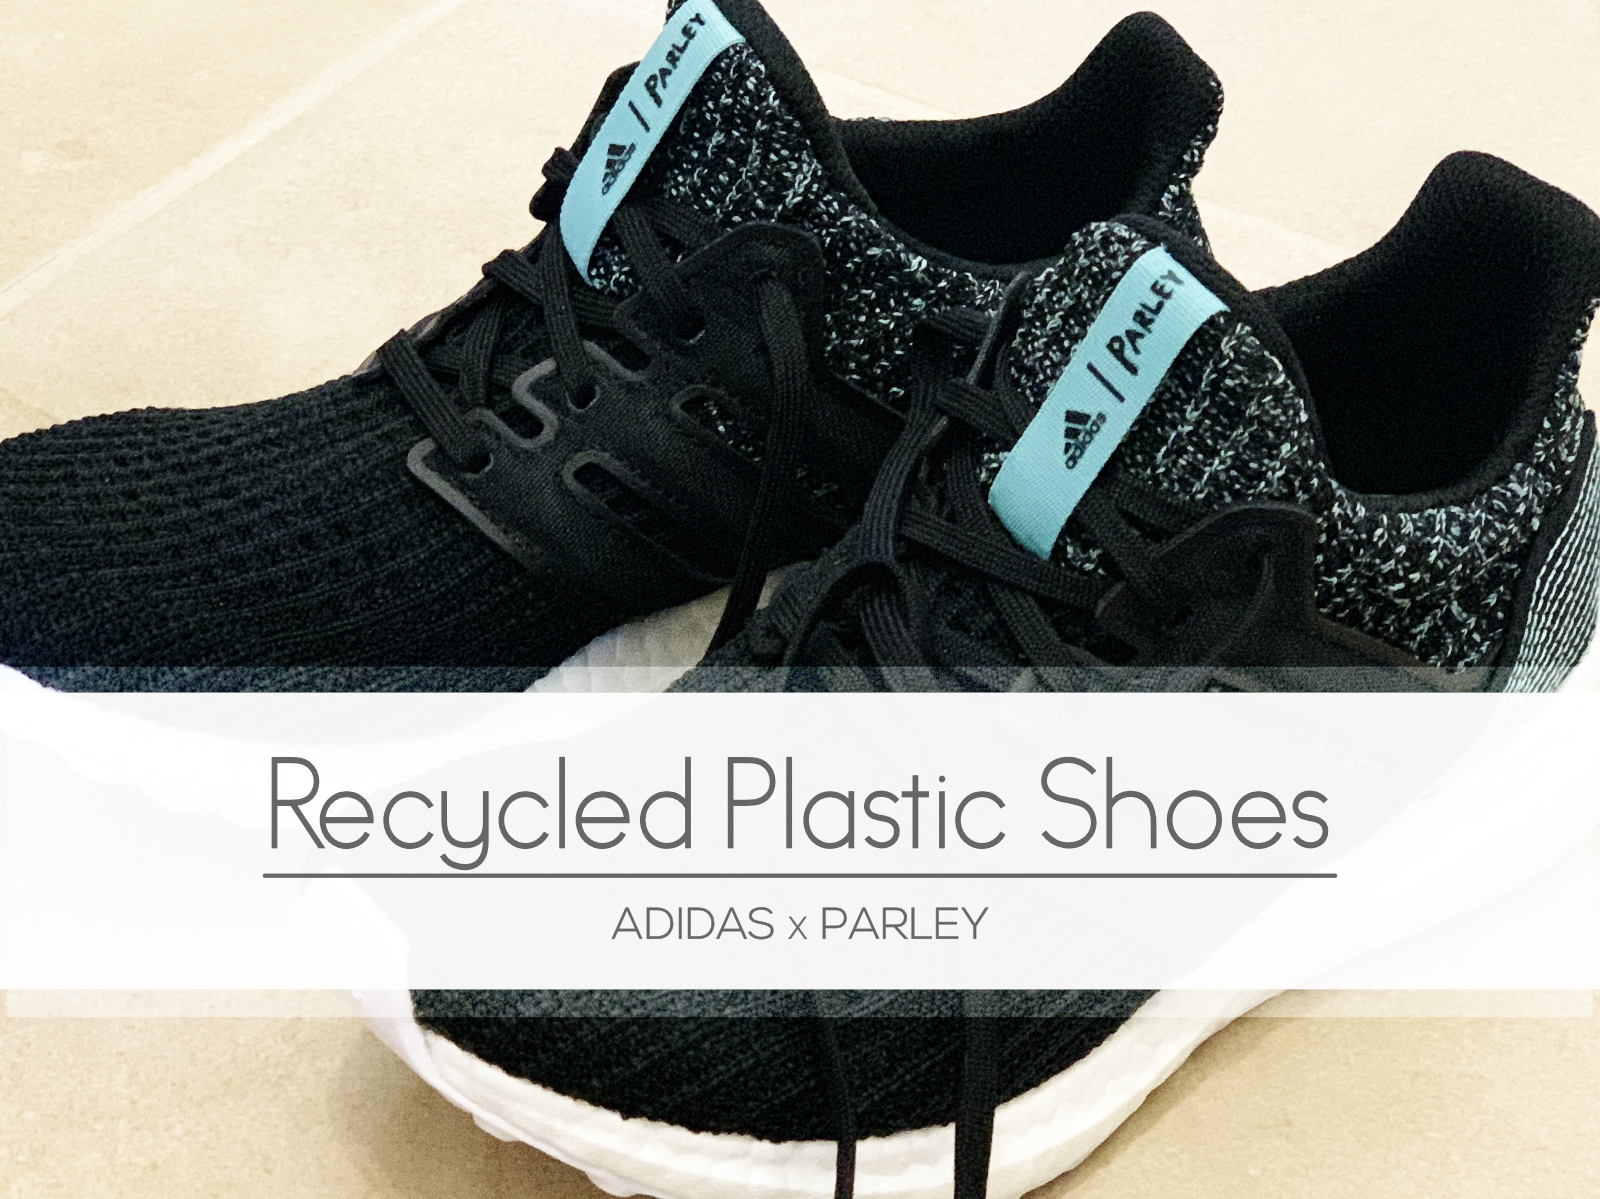 Adidas Parley Ultra Boost Recycled